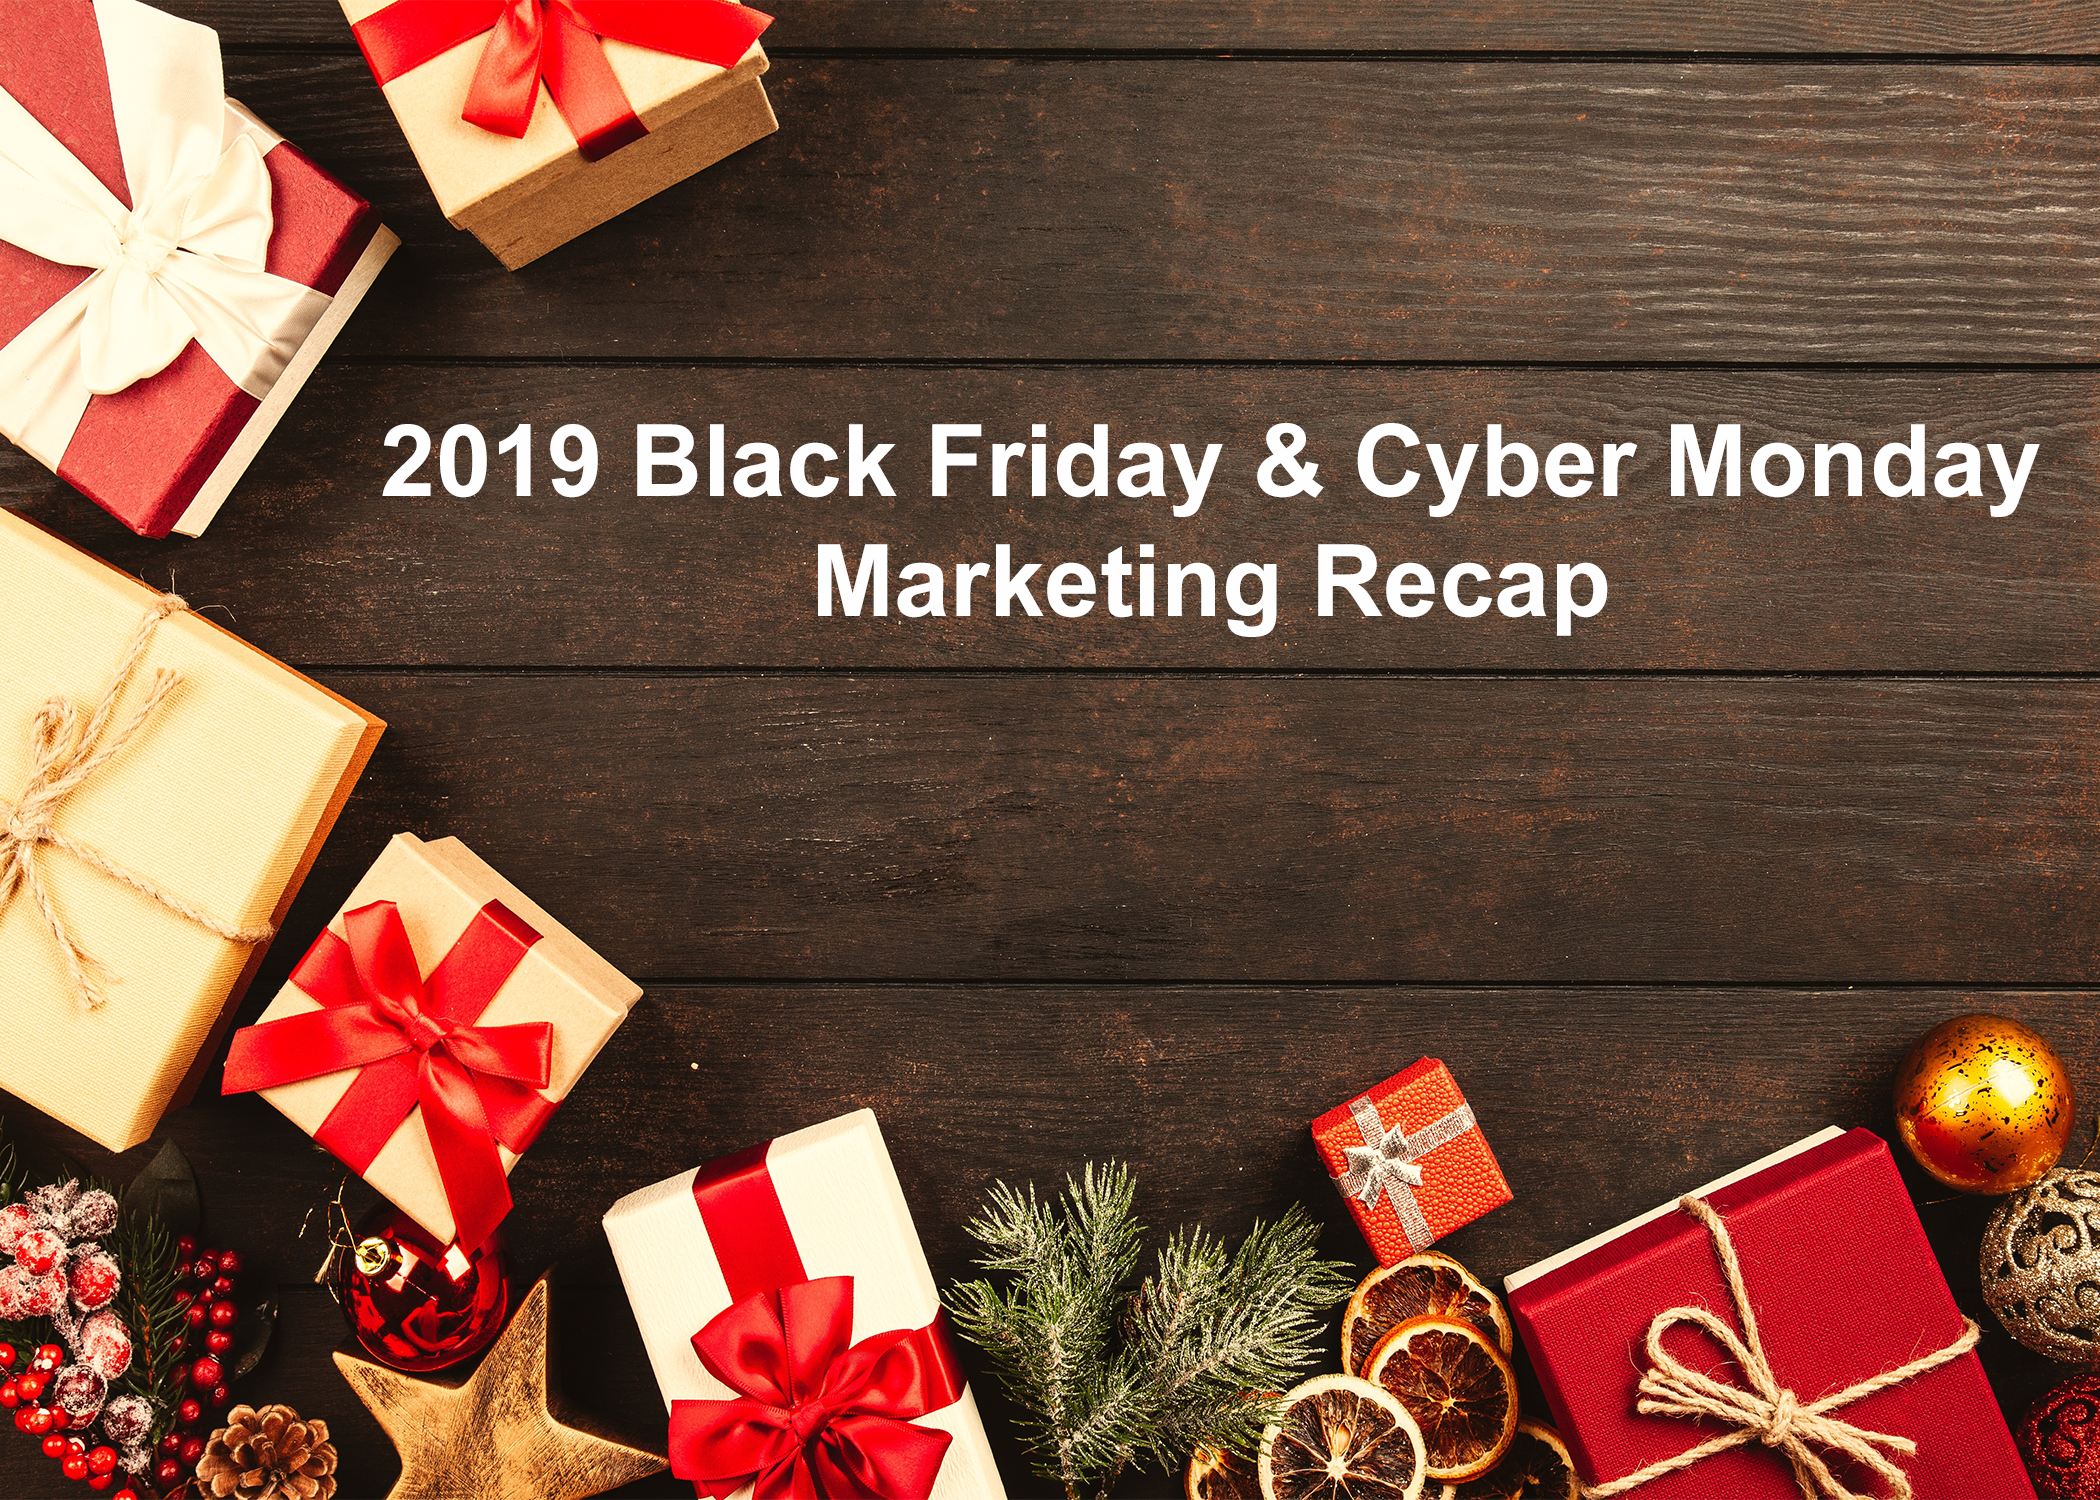 2019 Black Friday & Cyber Monday Marketing Recap